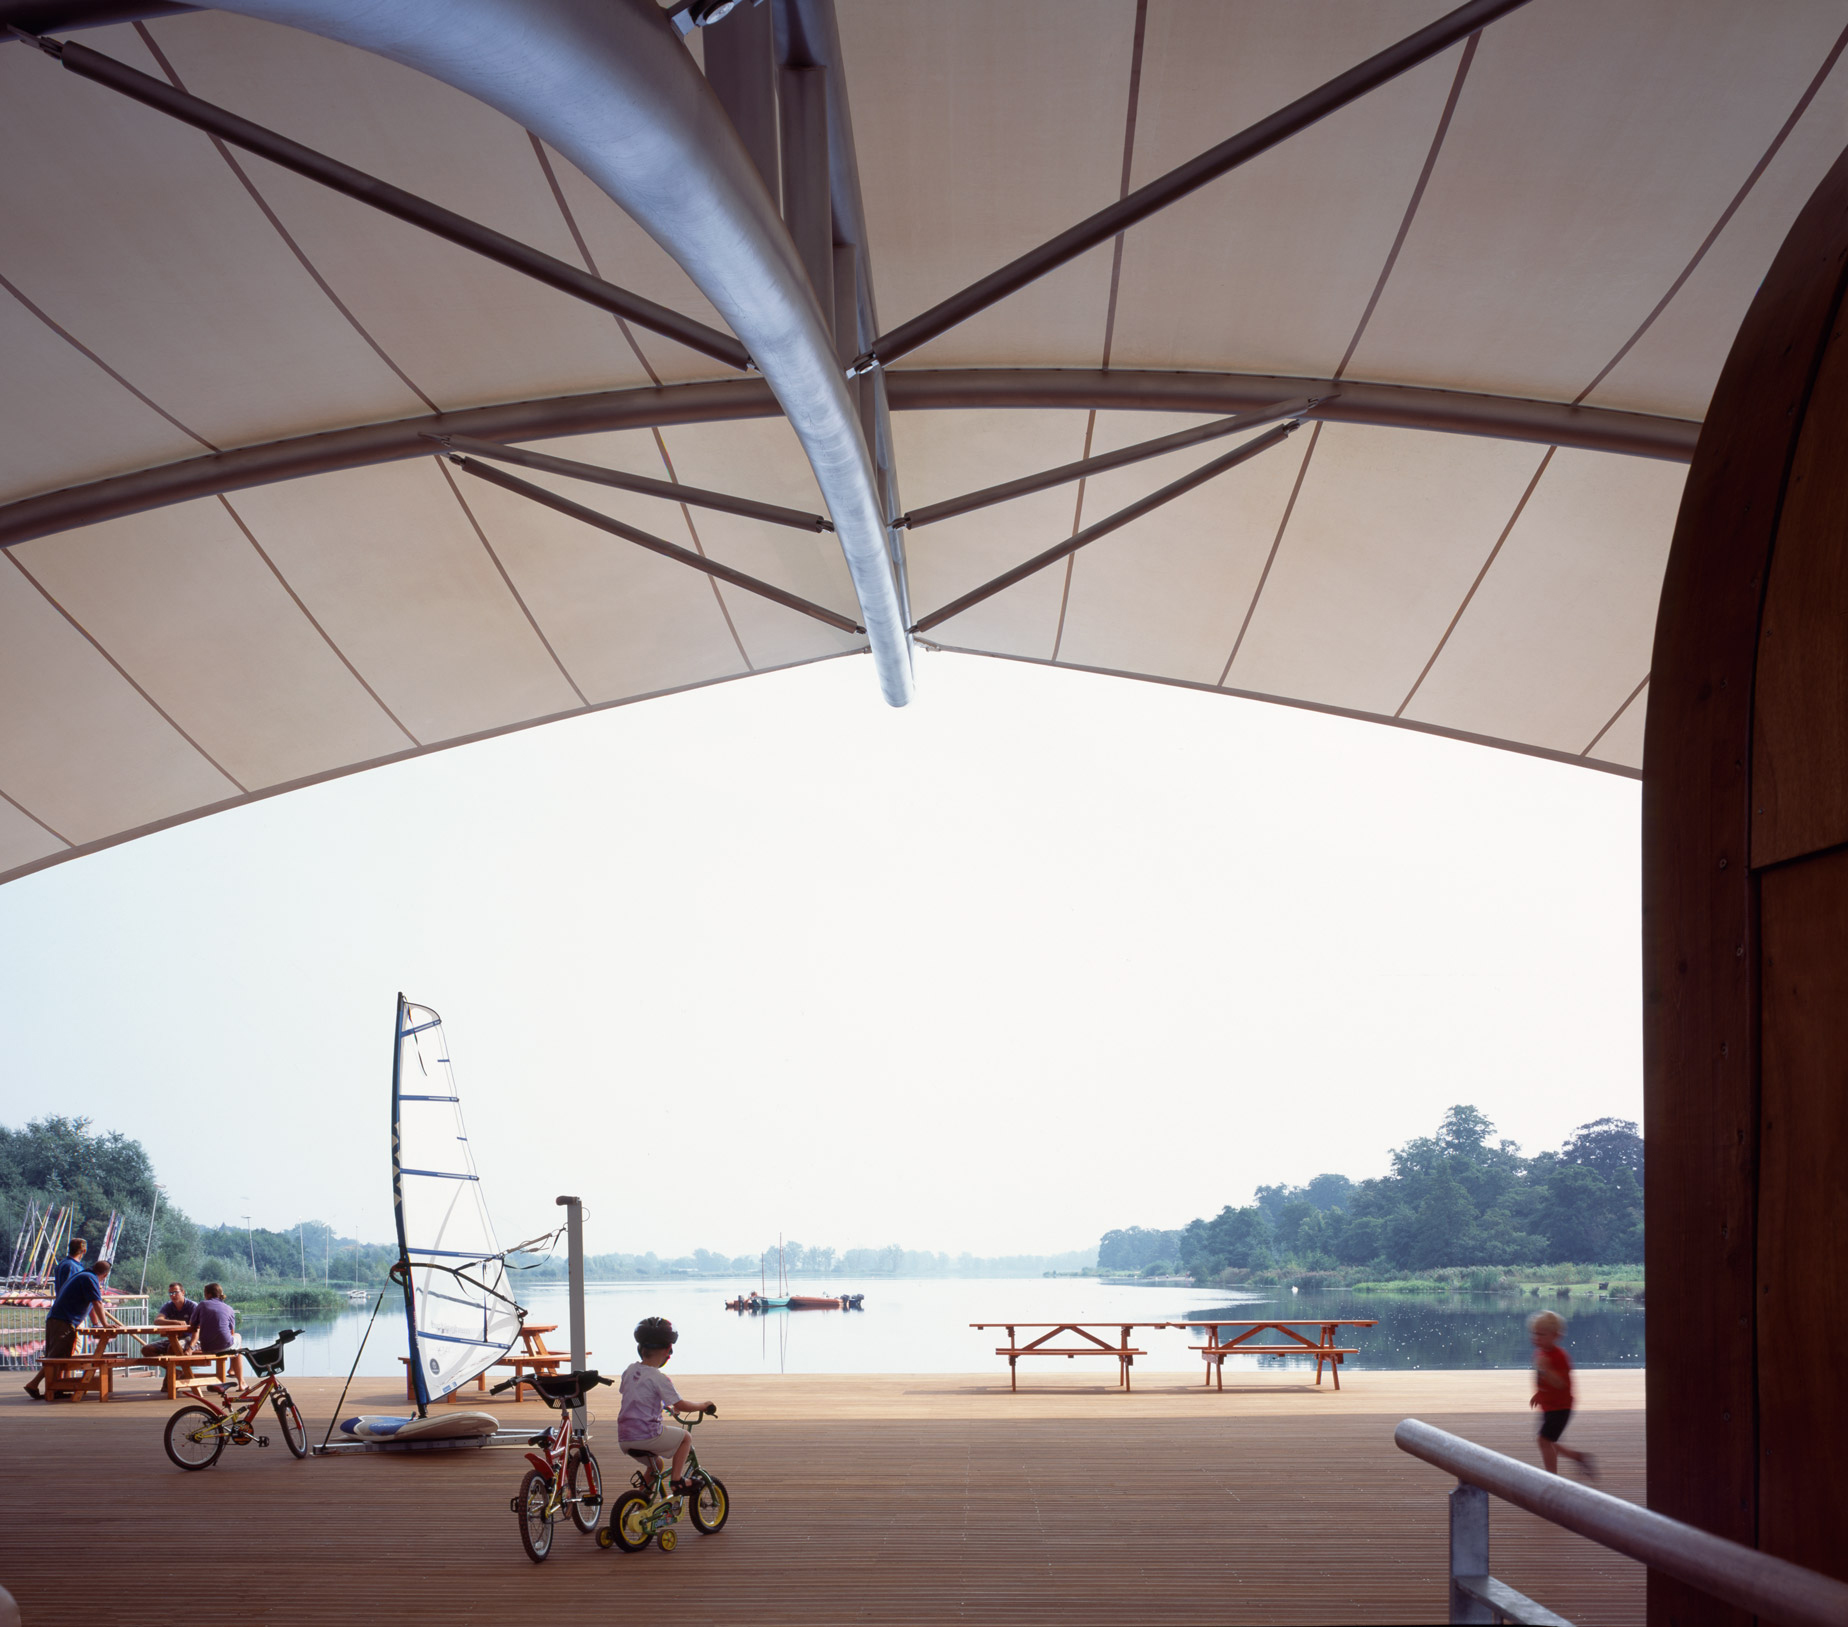 Water Activities Centre for Whitlingham Country Park